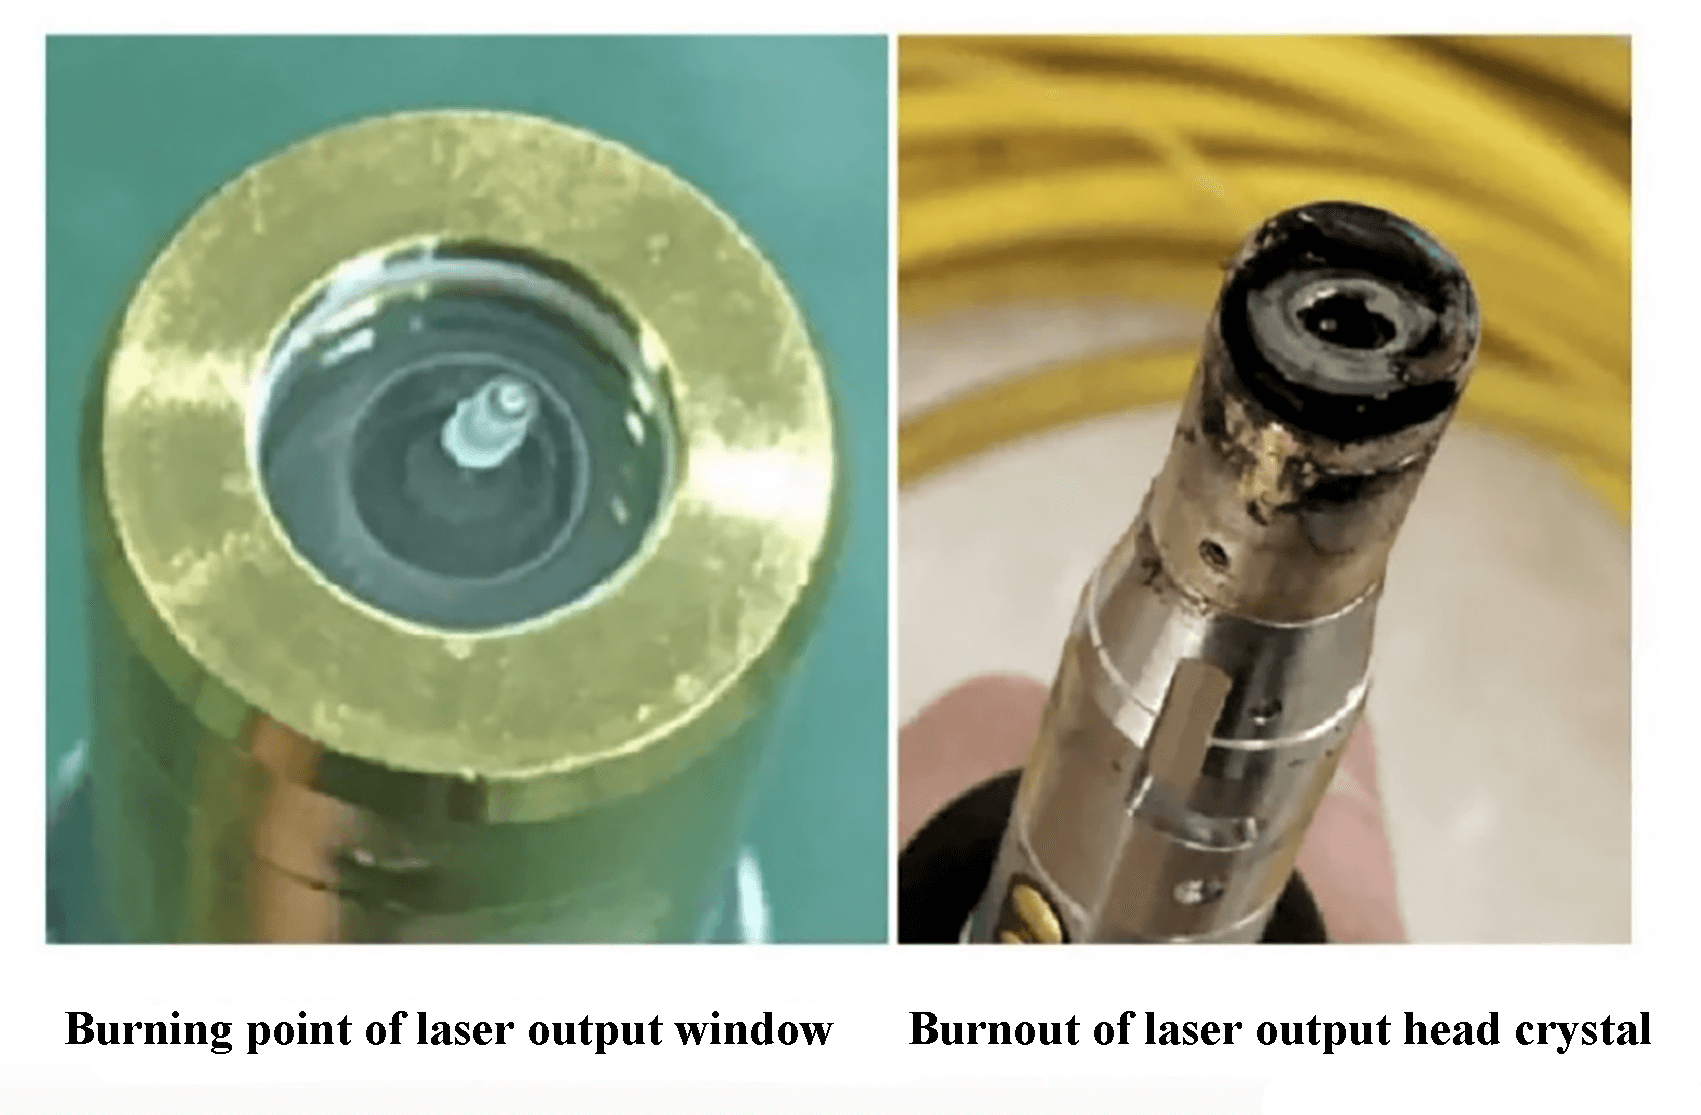 Fig. 5 Burnout of the laser output head